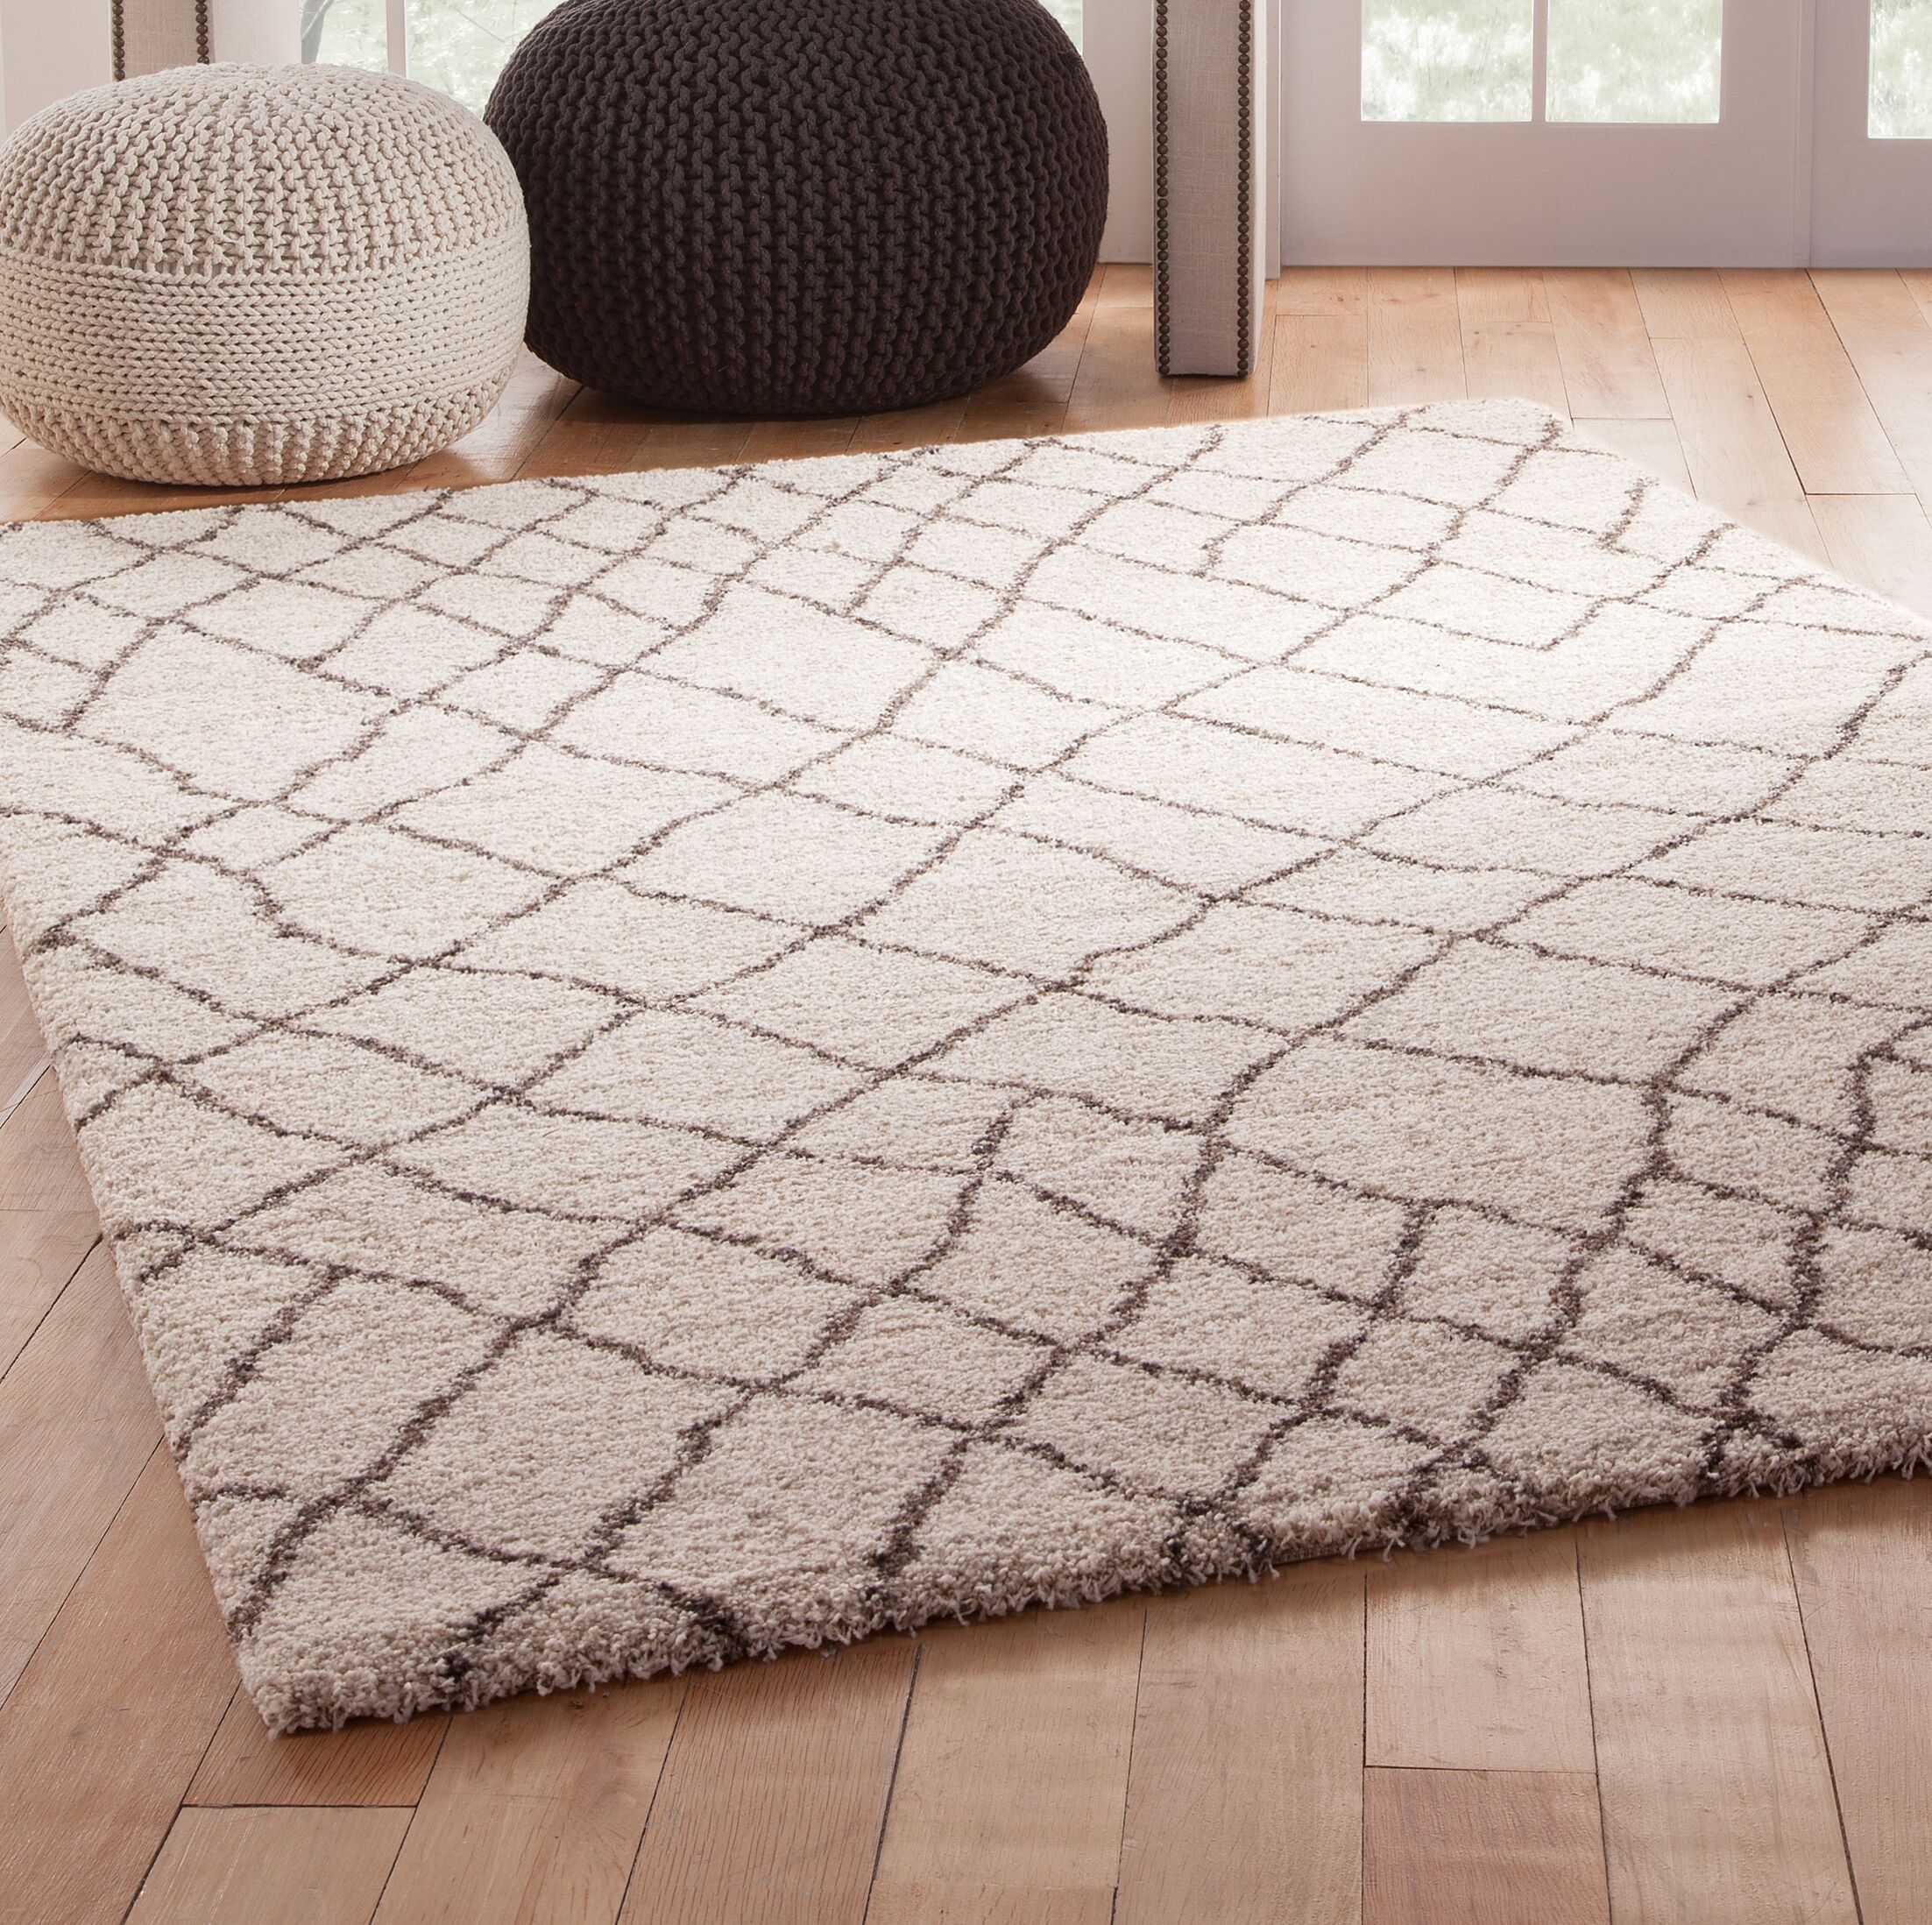 Haverstraw Ivory/Brown Area Rug Rug Size: 7'10